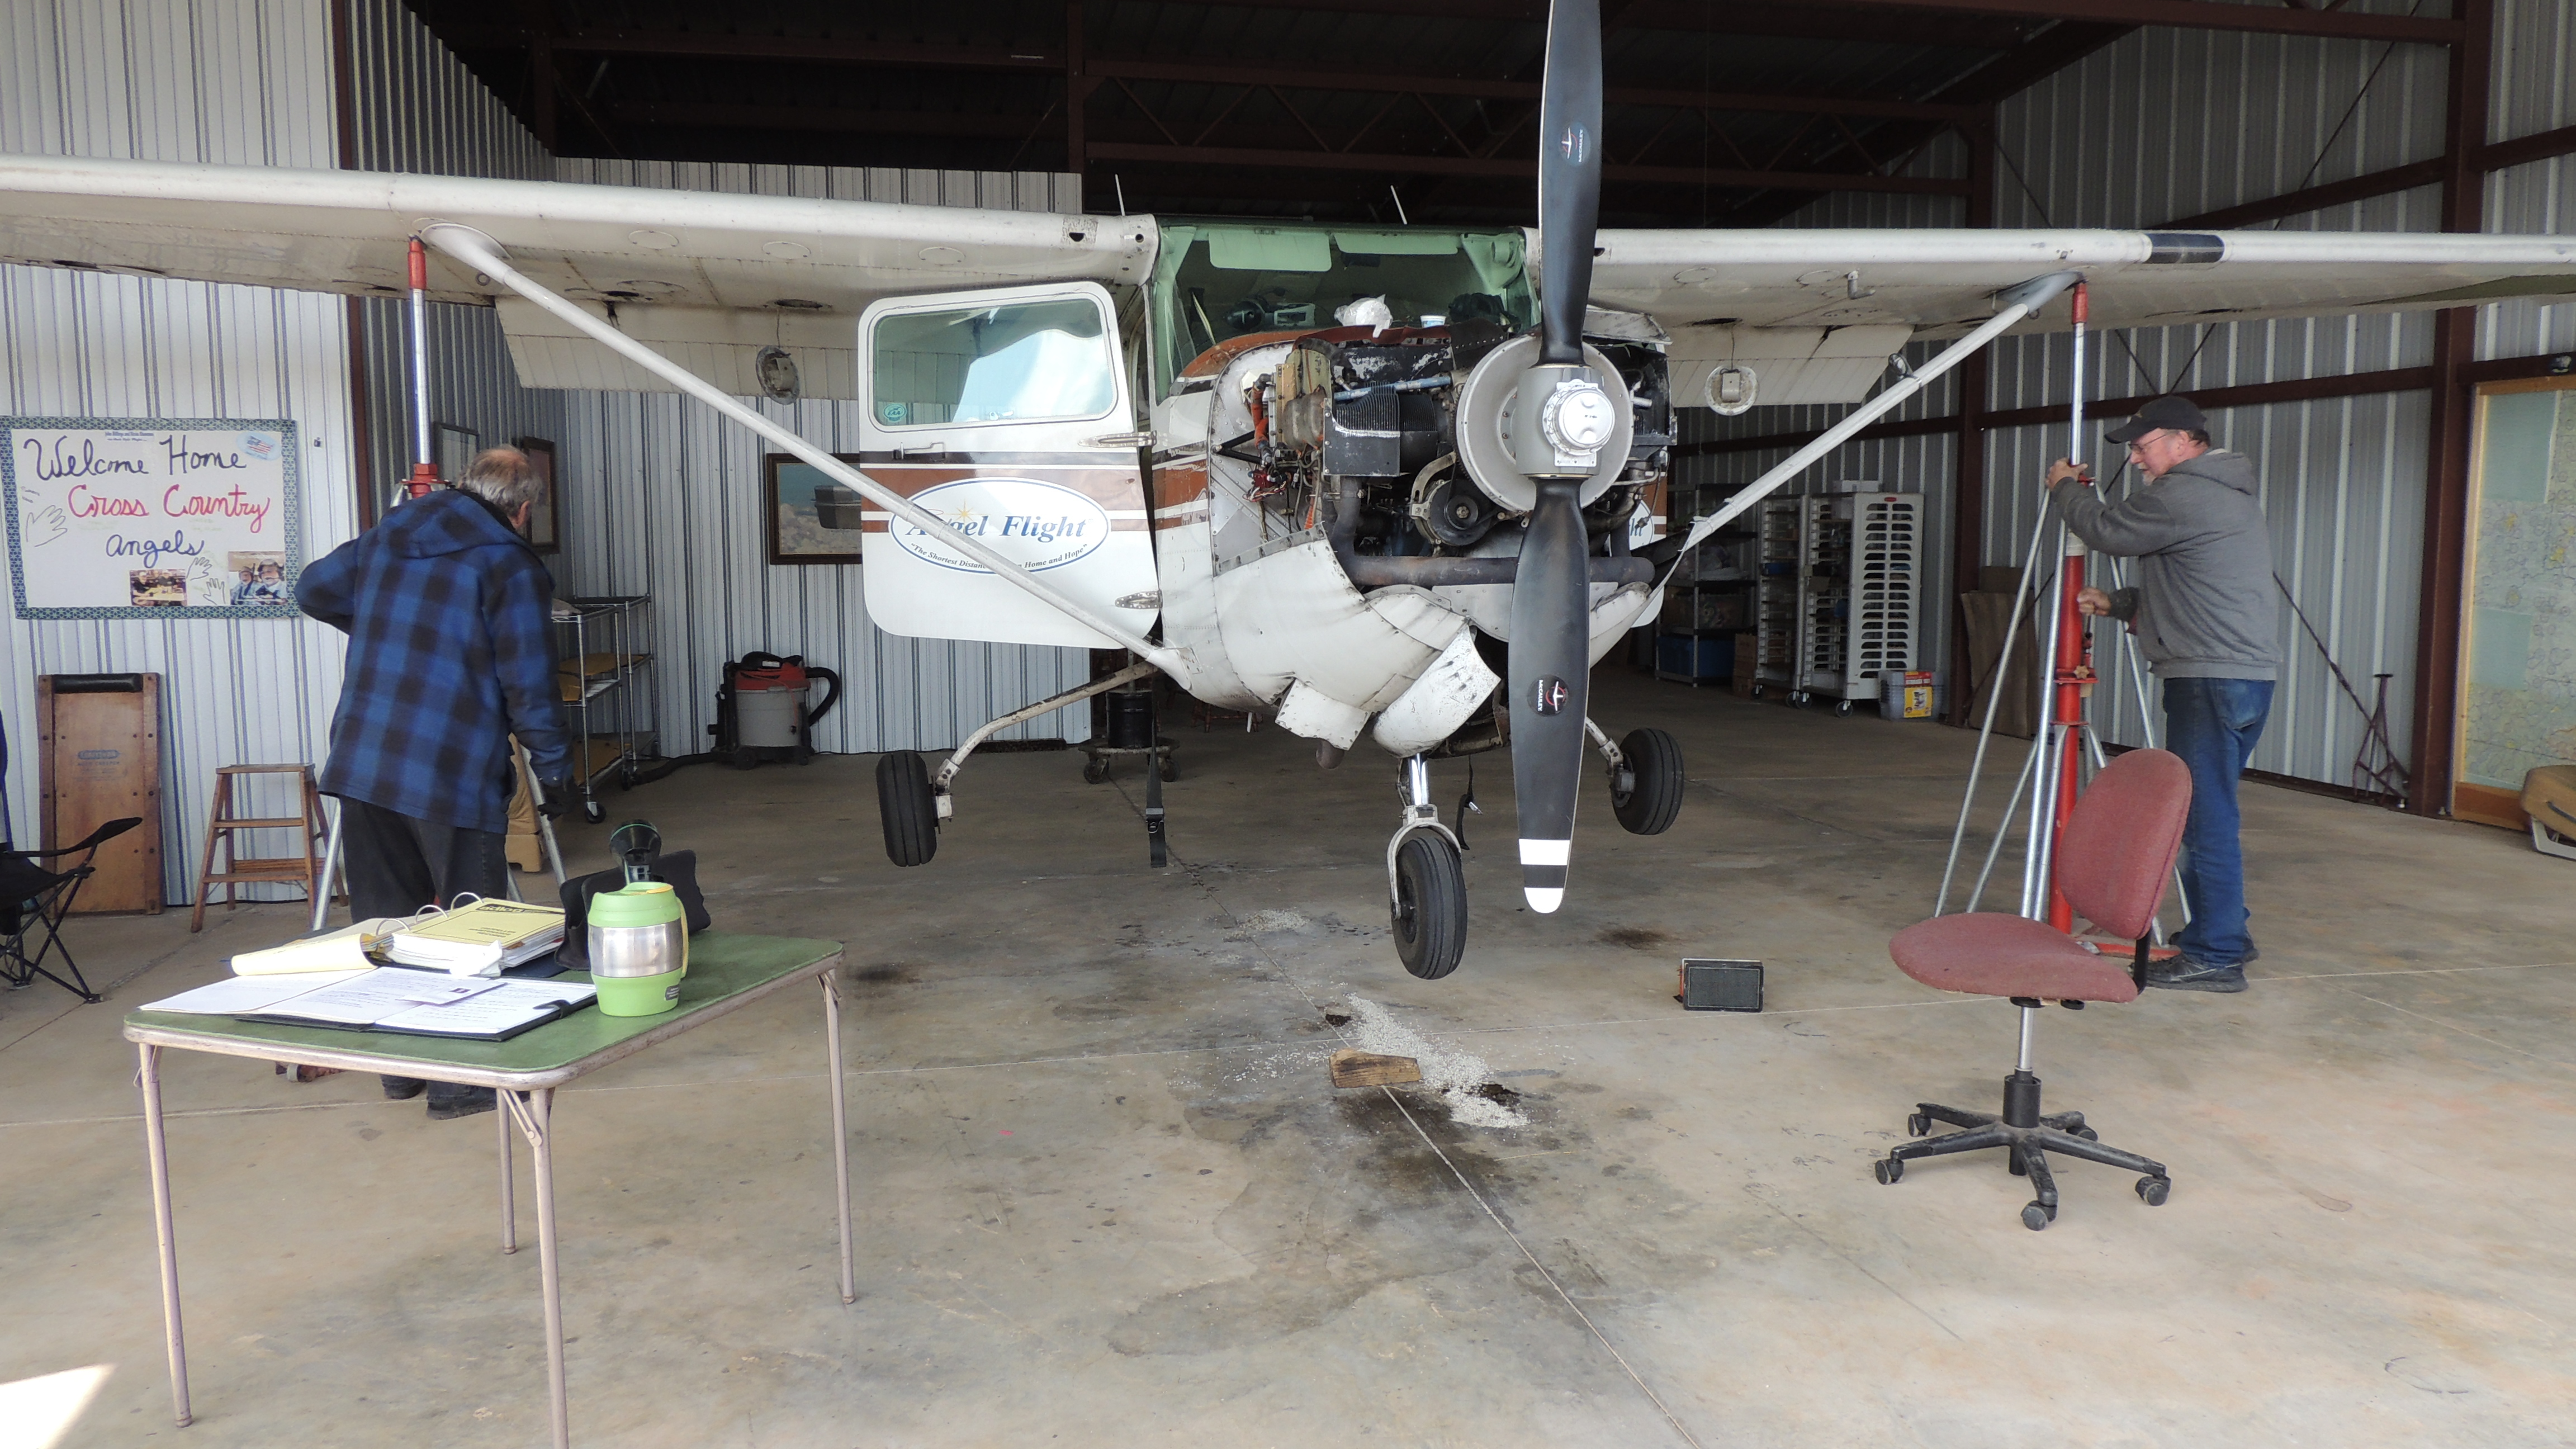 Sditting on jacks so that the landing gear can be checked